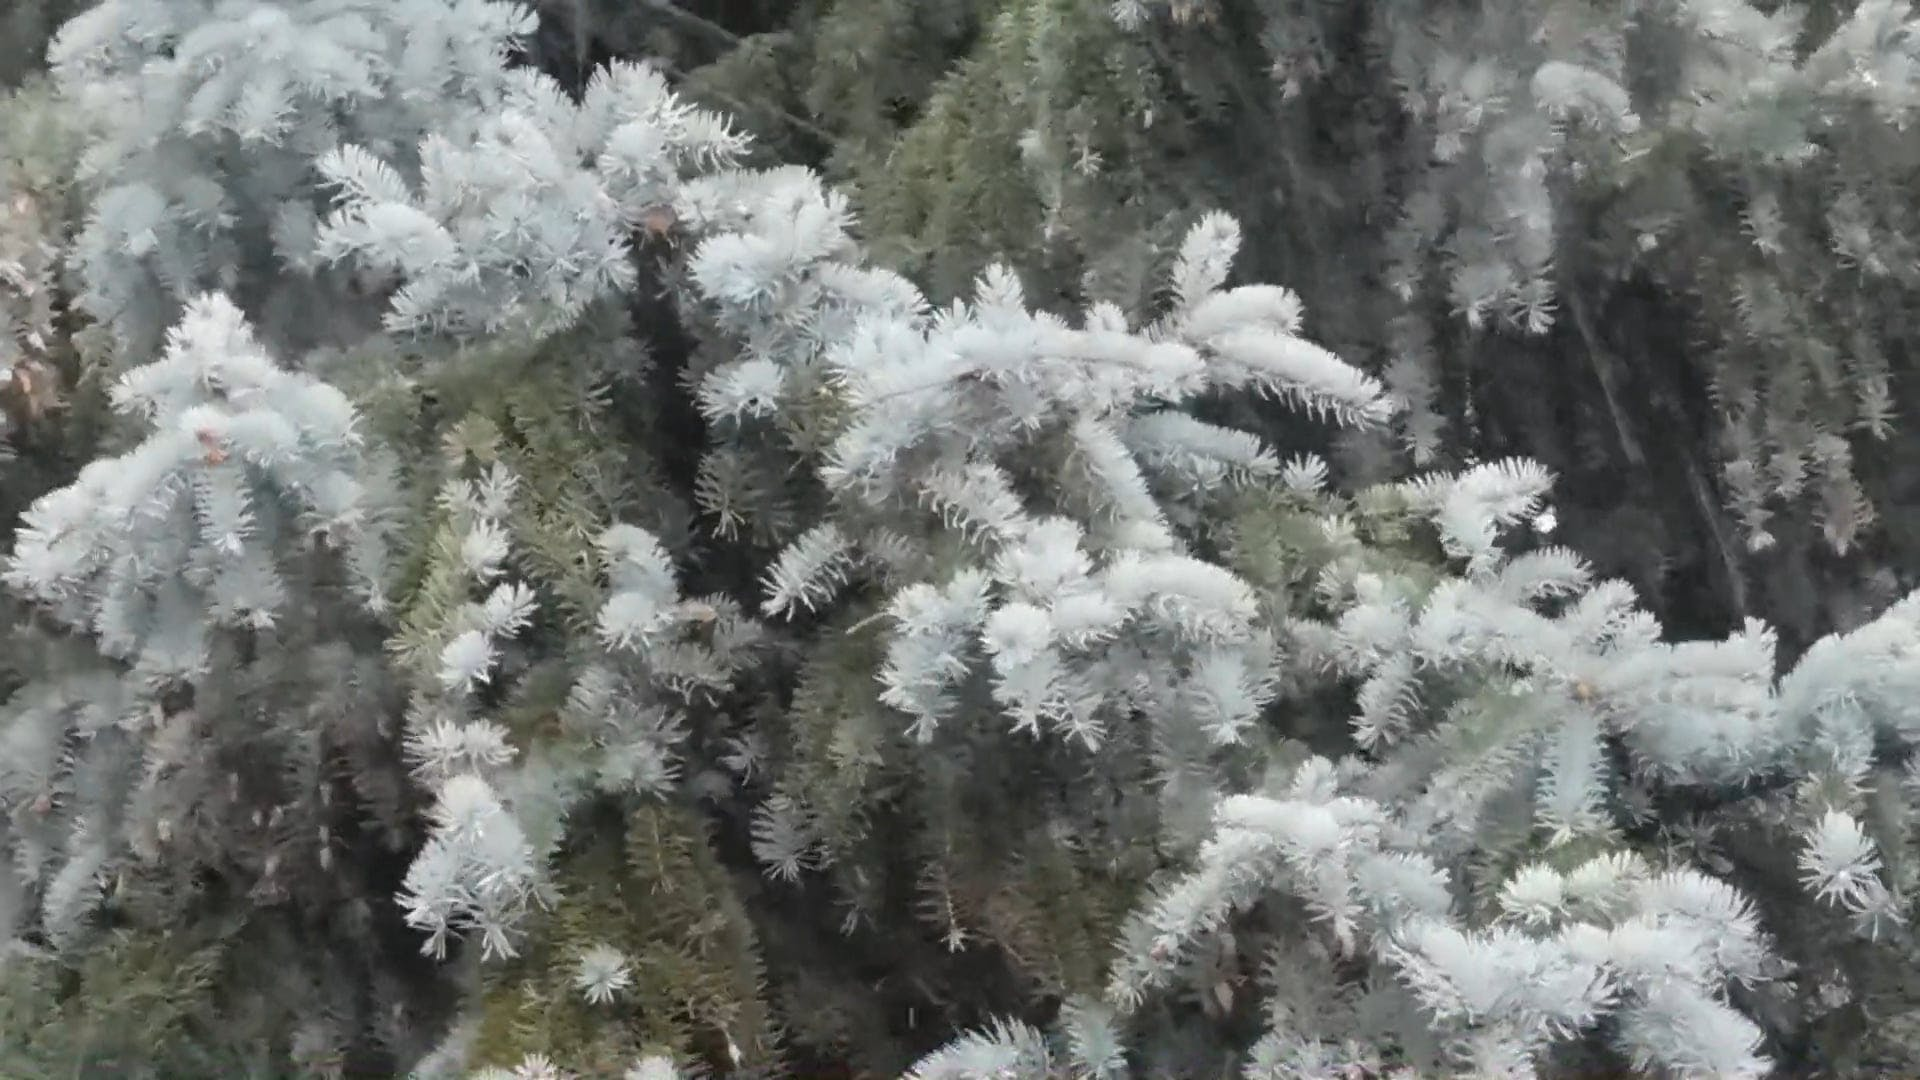 Silver Spruce in the Stormy Weather